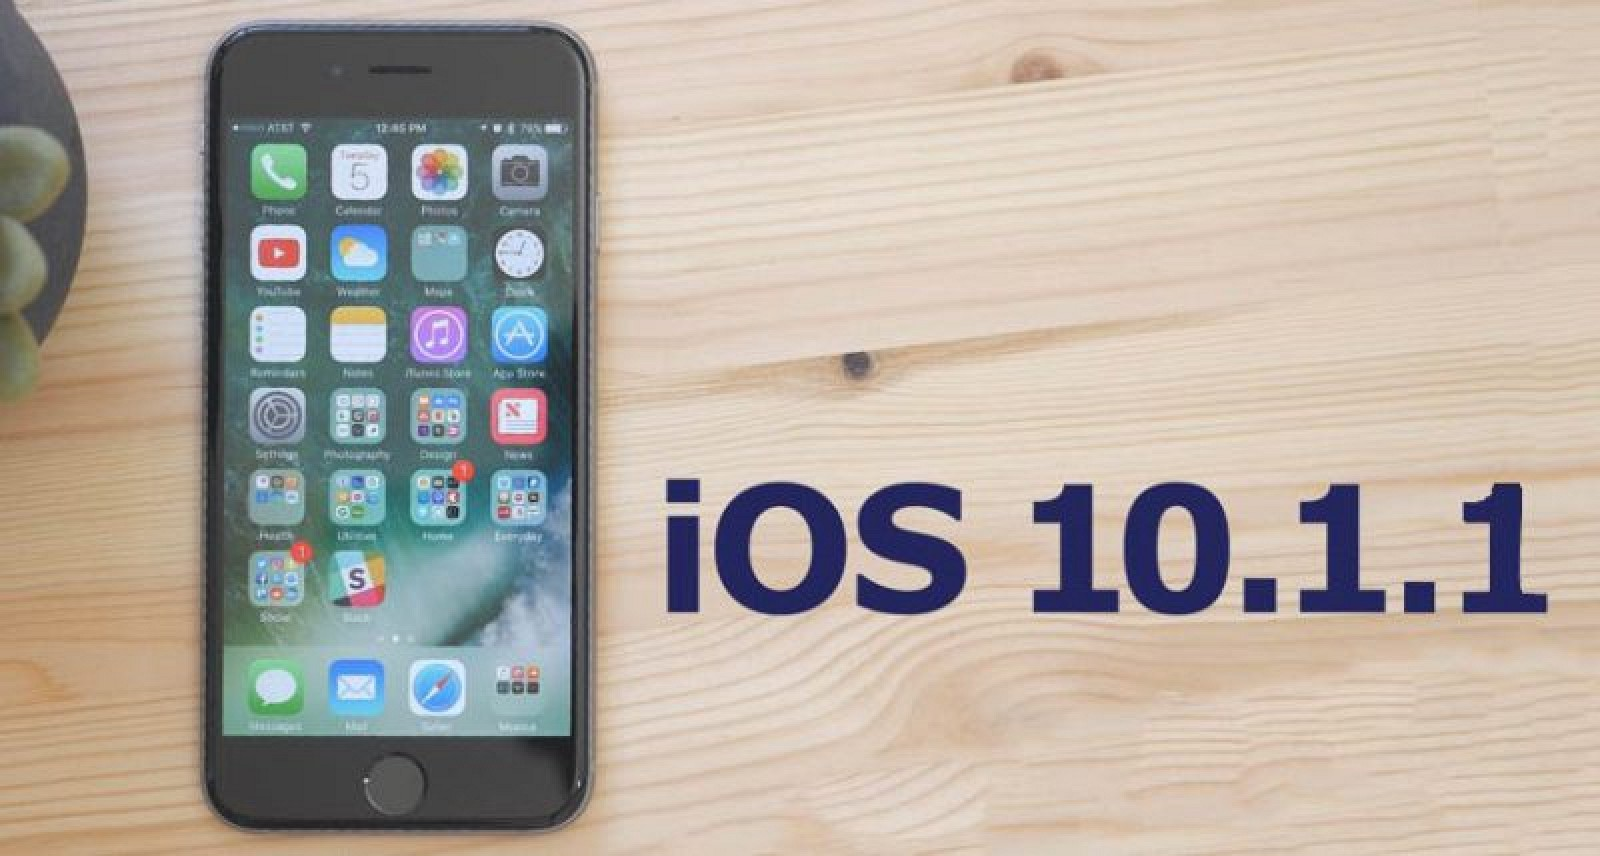 Apple Releases Updated Version of iOS 10.1.1